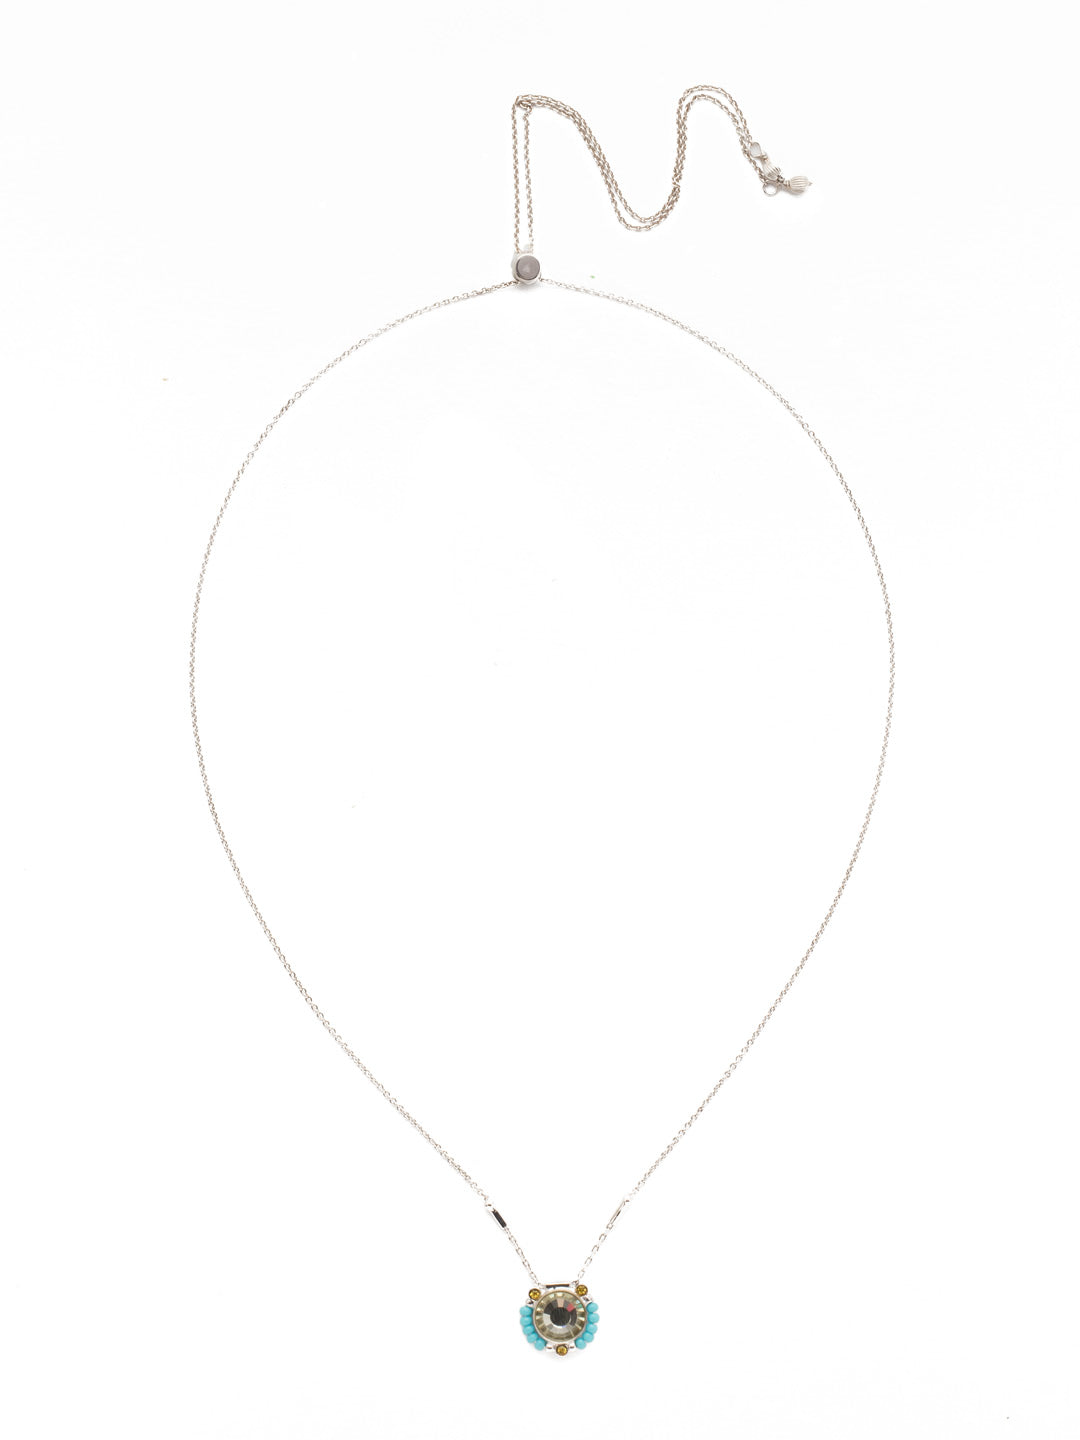 Ebe Classic Necklace - NEH9RHTHT